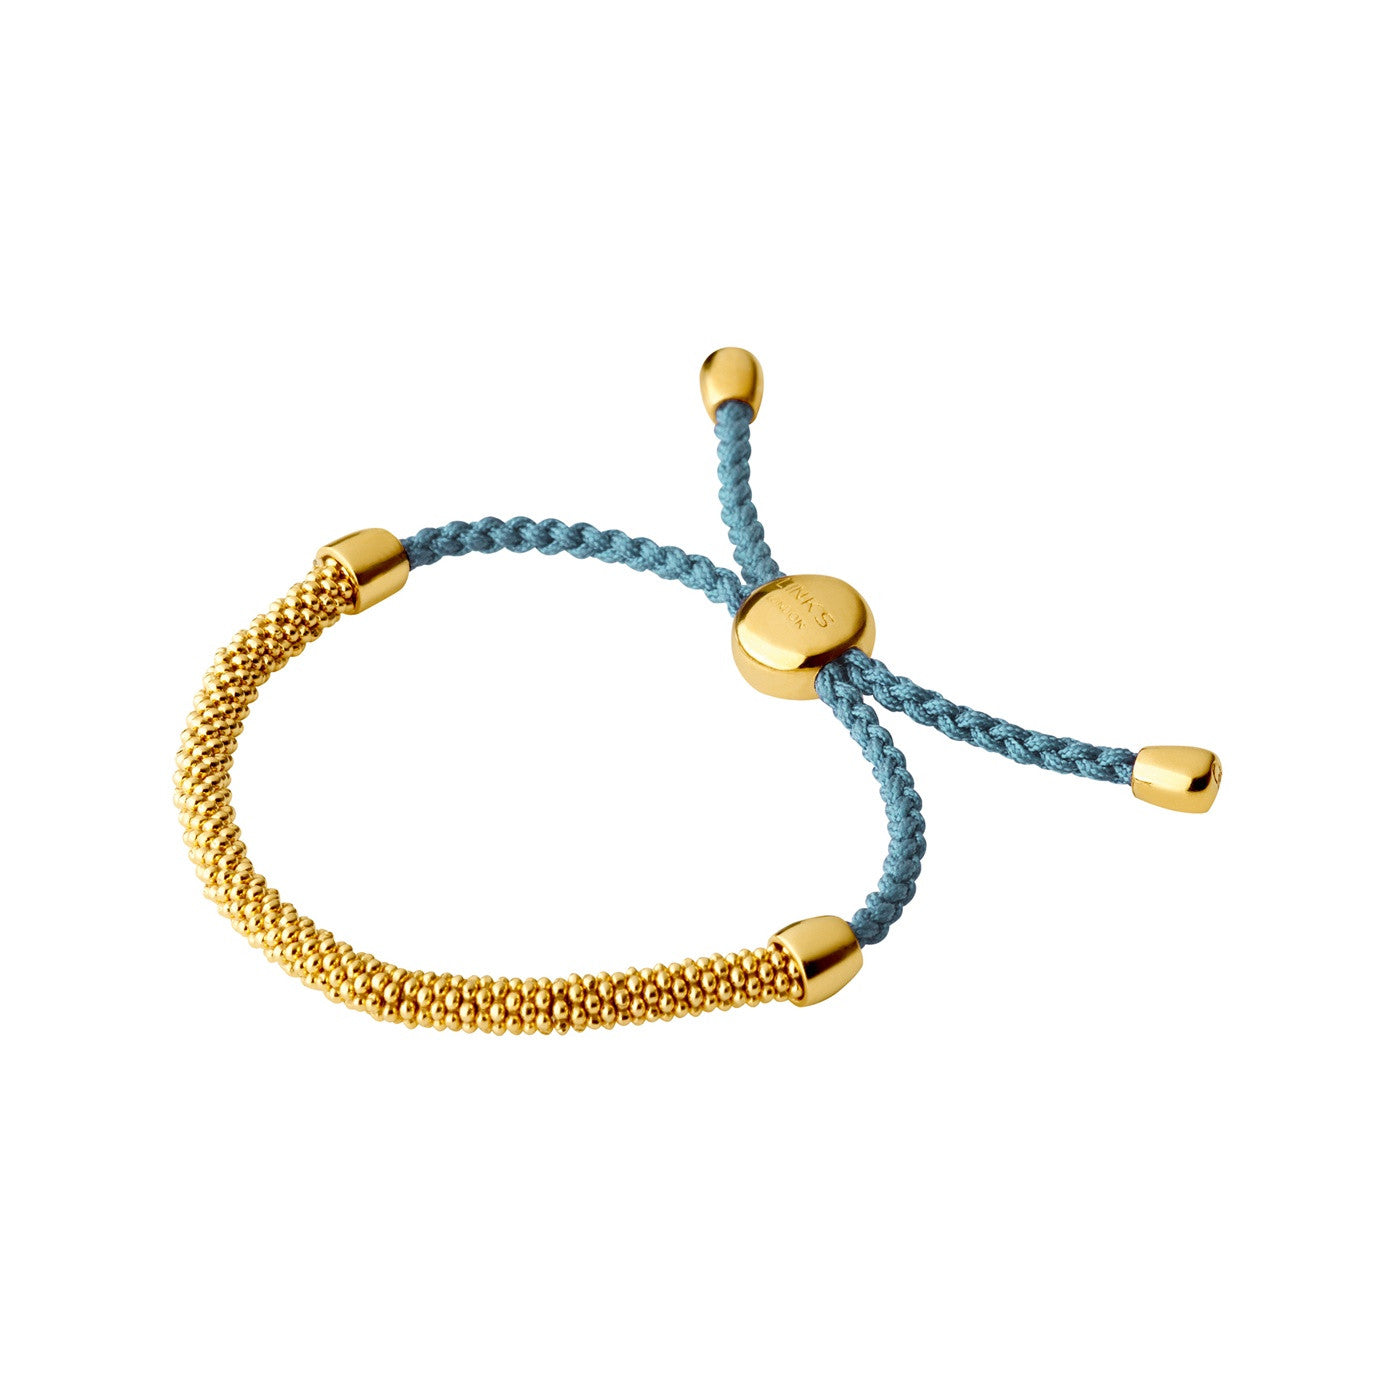 Links of London Effervescence XS 18K Yellow Gold Vermeil & Blue Cord Bracelet - 5010.3147